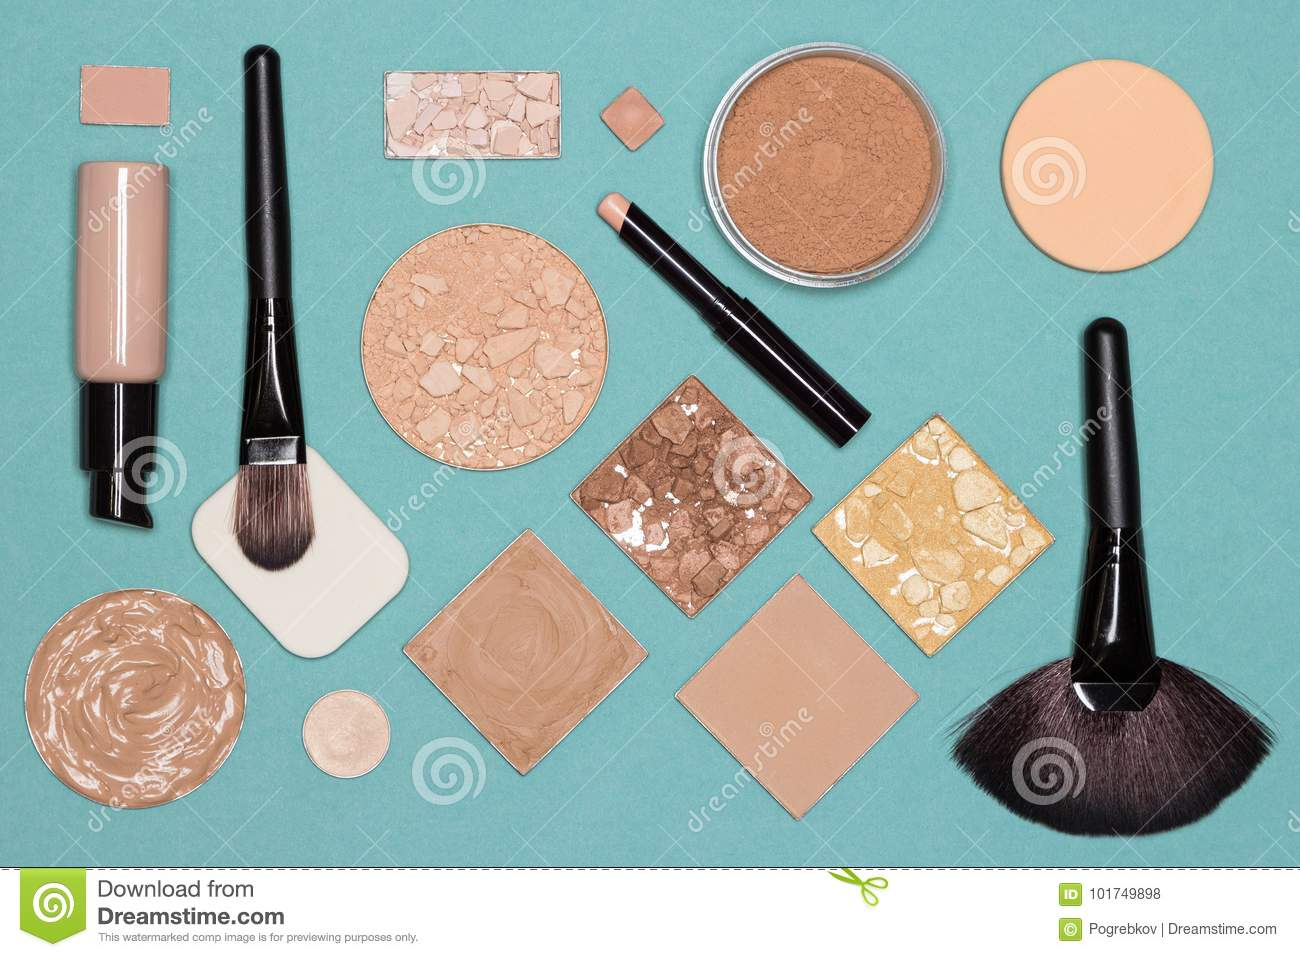 MAC Cosmetics, stylized as M·A·C, is a cosmetics manufacturer founded in Toronto, Canada in by Frank Toskan and Frank illbook.ml company is headquartered in New York City and became part of the Estée Lauder Companies in MAC is an acronym for Make-up Art Cosmetics.